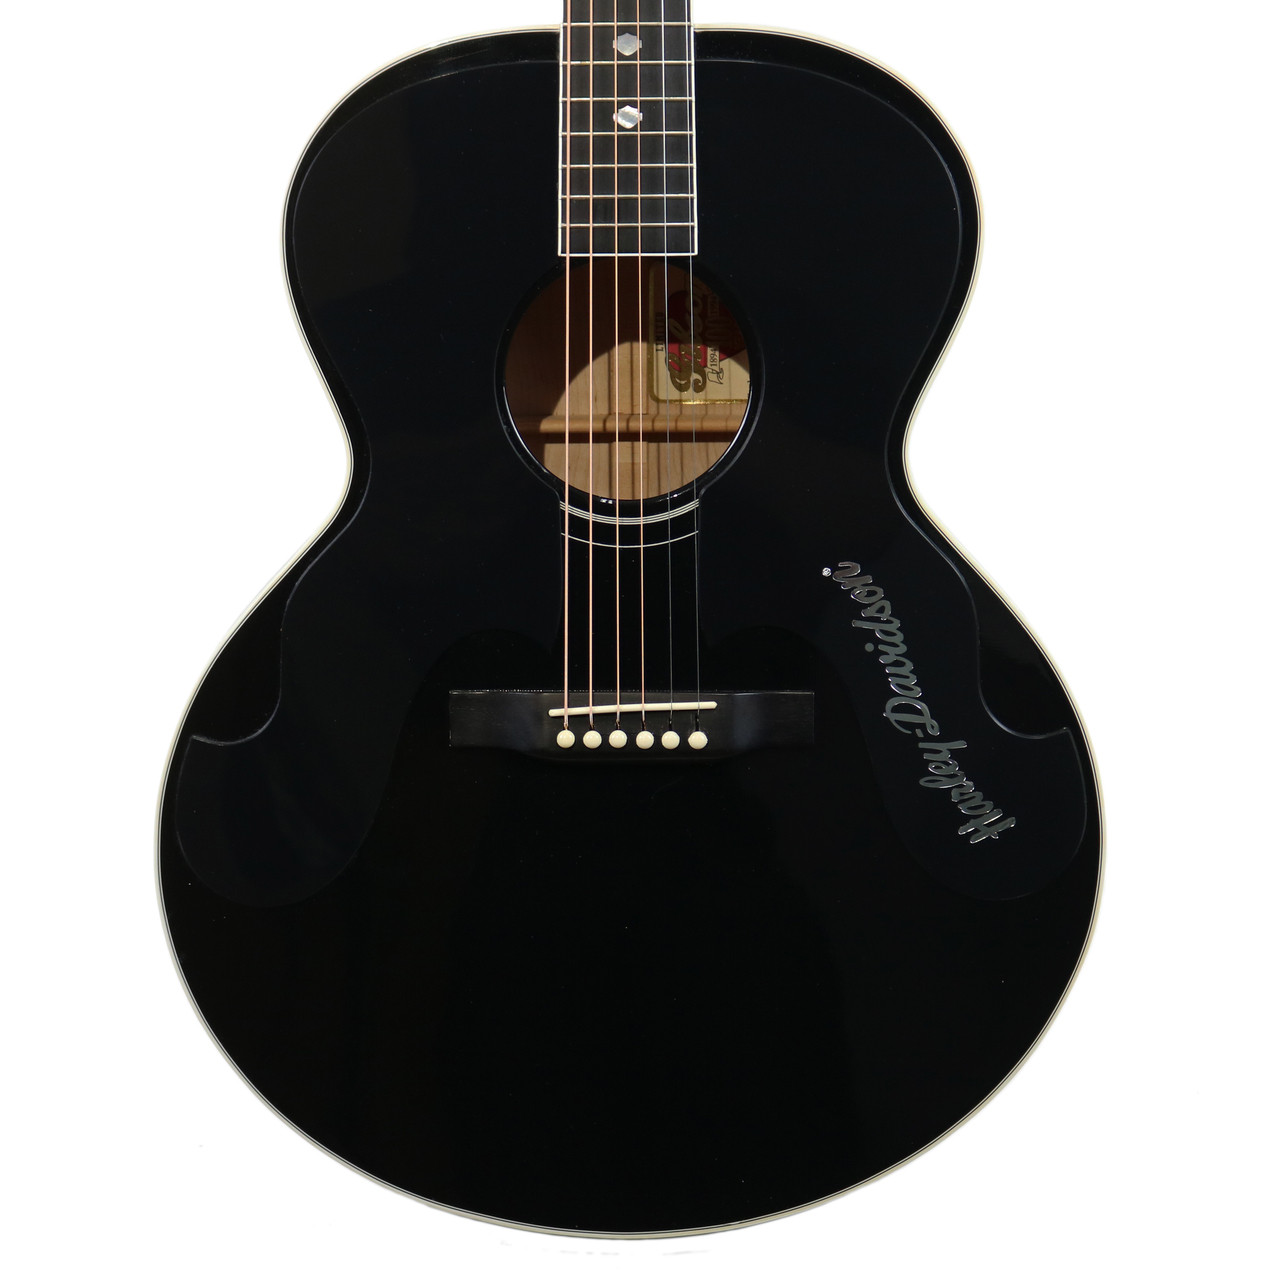 1994 gibson harley davidson ltd j 185 acoustic guitar black ebay. Black Bedroom Furniture Sets. Home Design Ideas